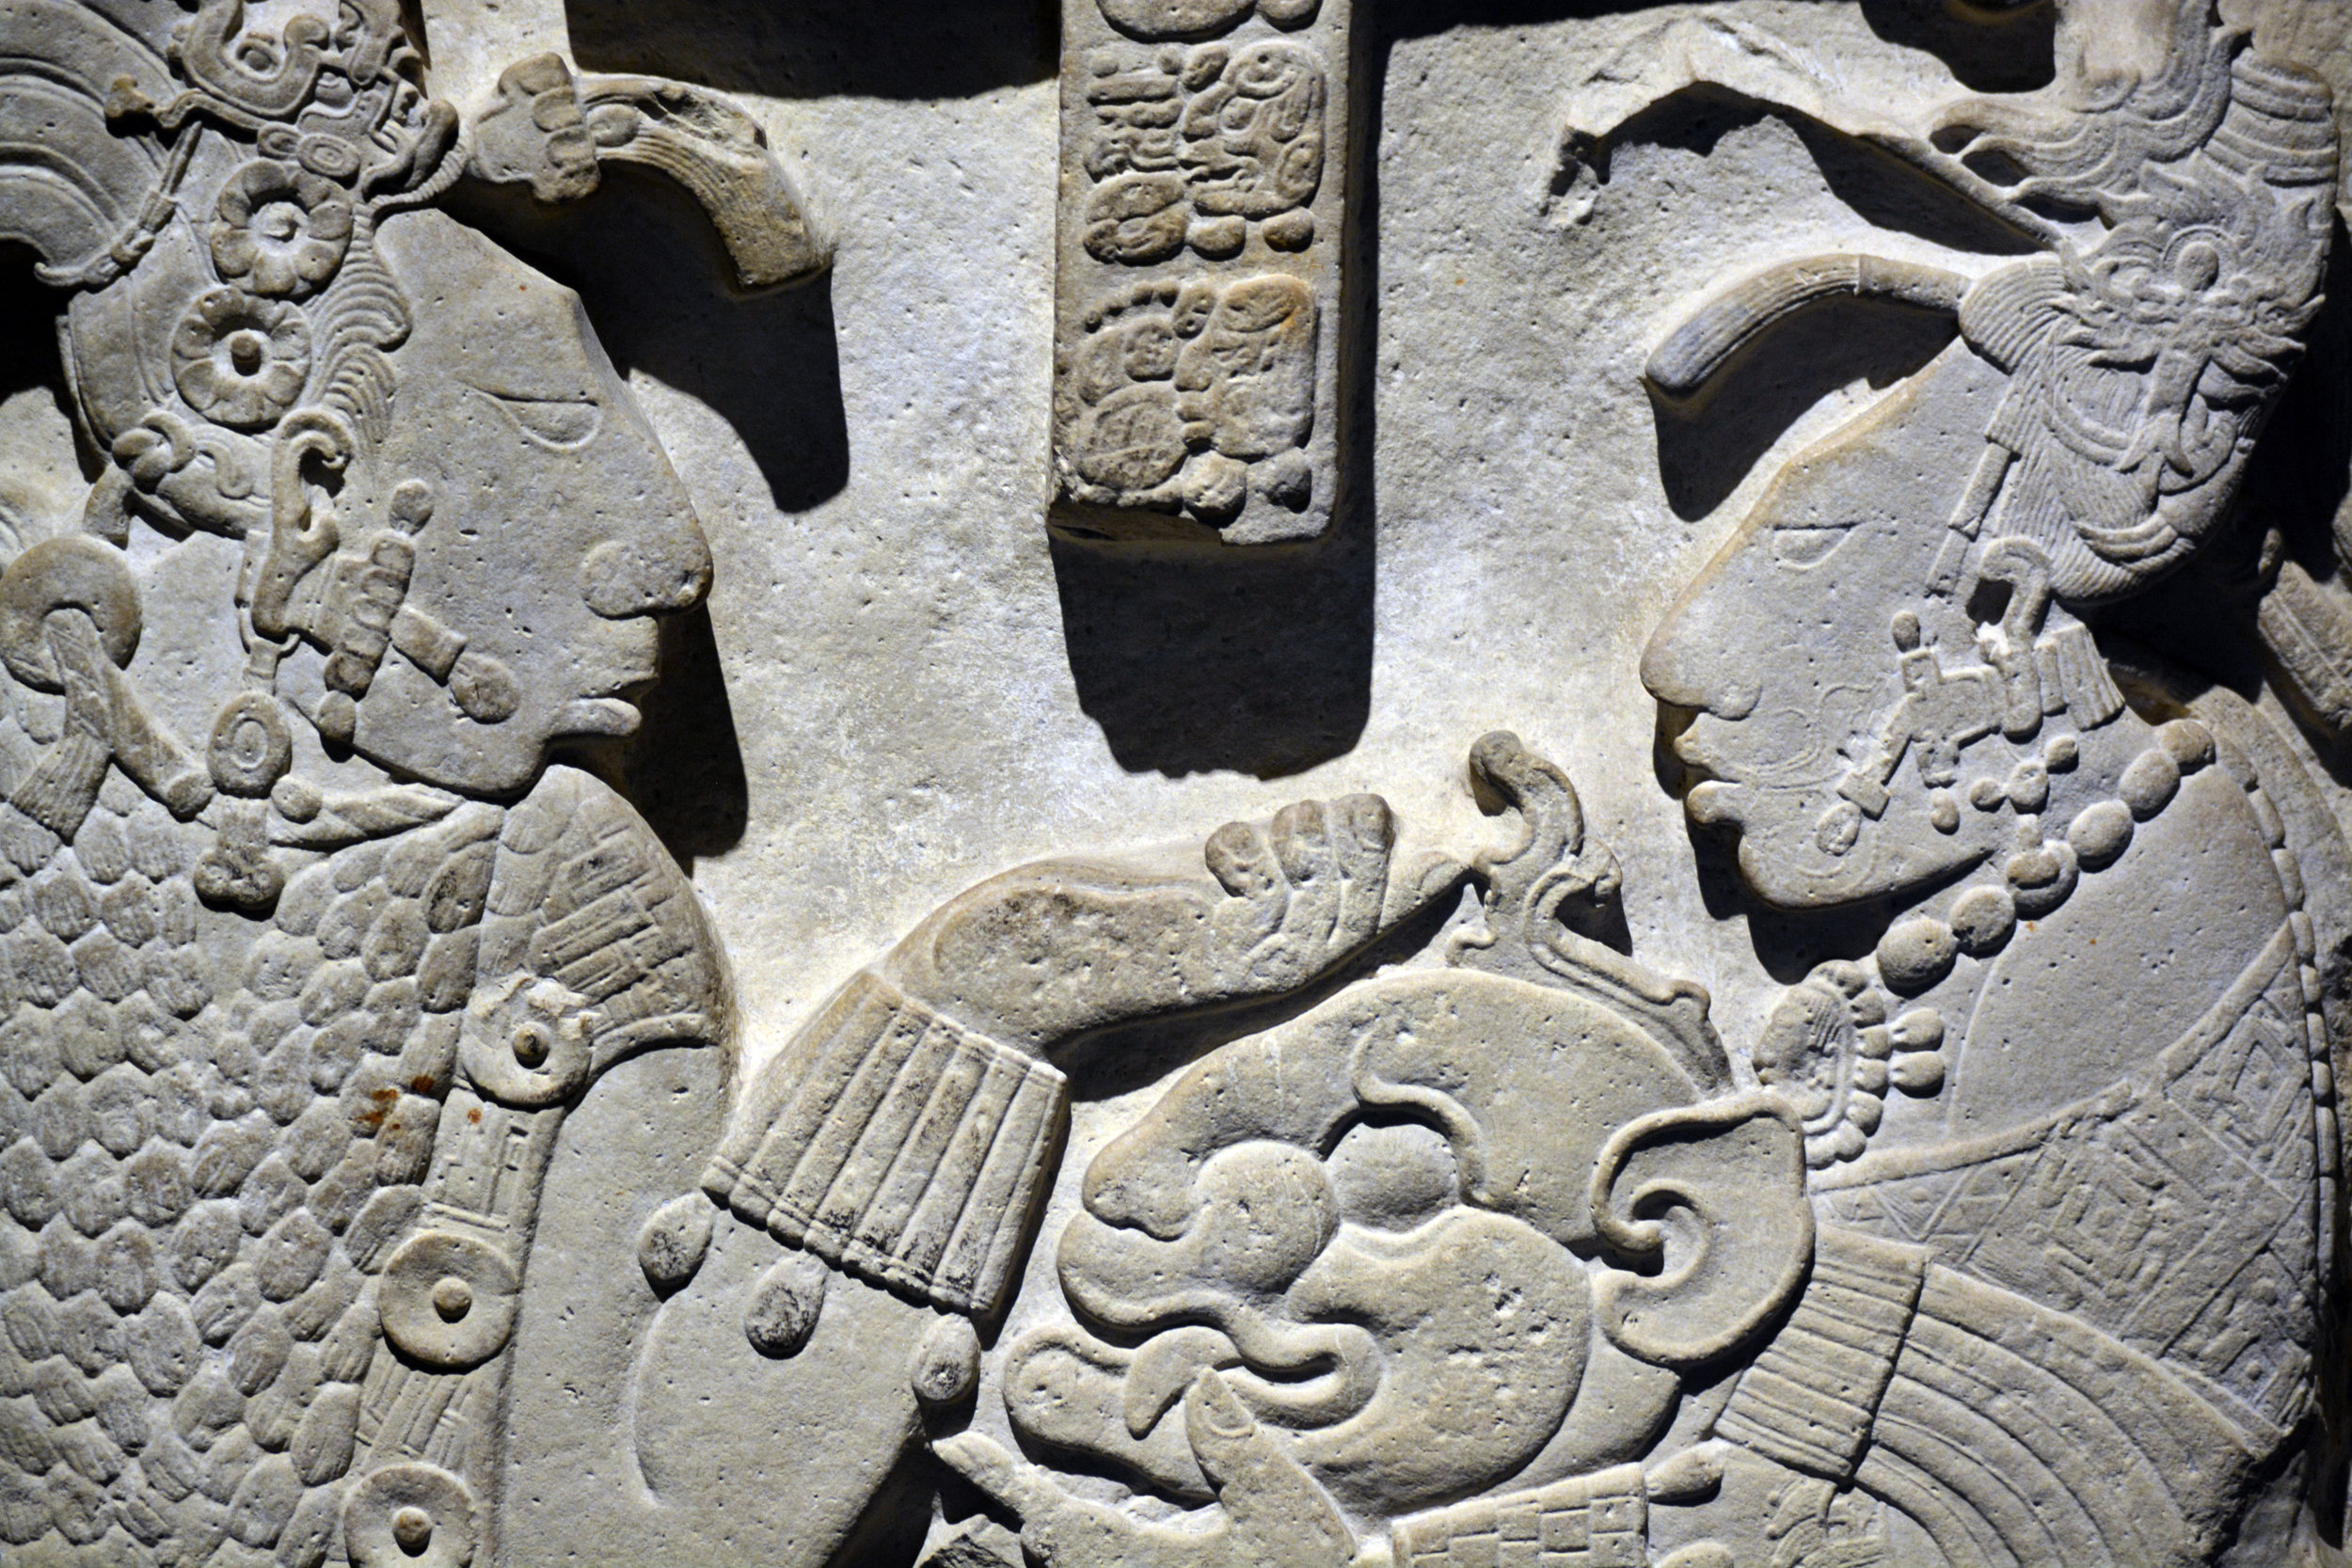 This lintel from the ancient city of Yaxchilán in what is now the state of Chiapas, Mexico conveys the richness and sophistication of Mayan civilization. Museo Nacional de Antropología, Ciudad de México.